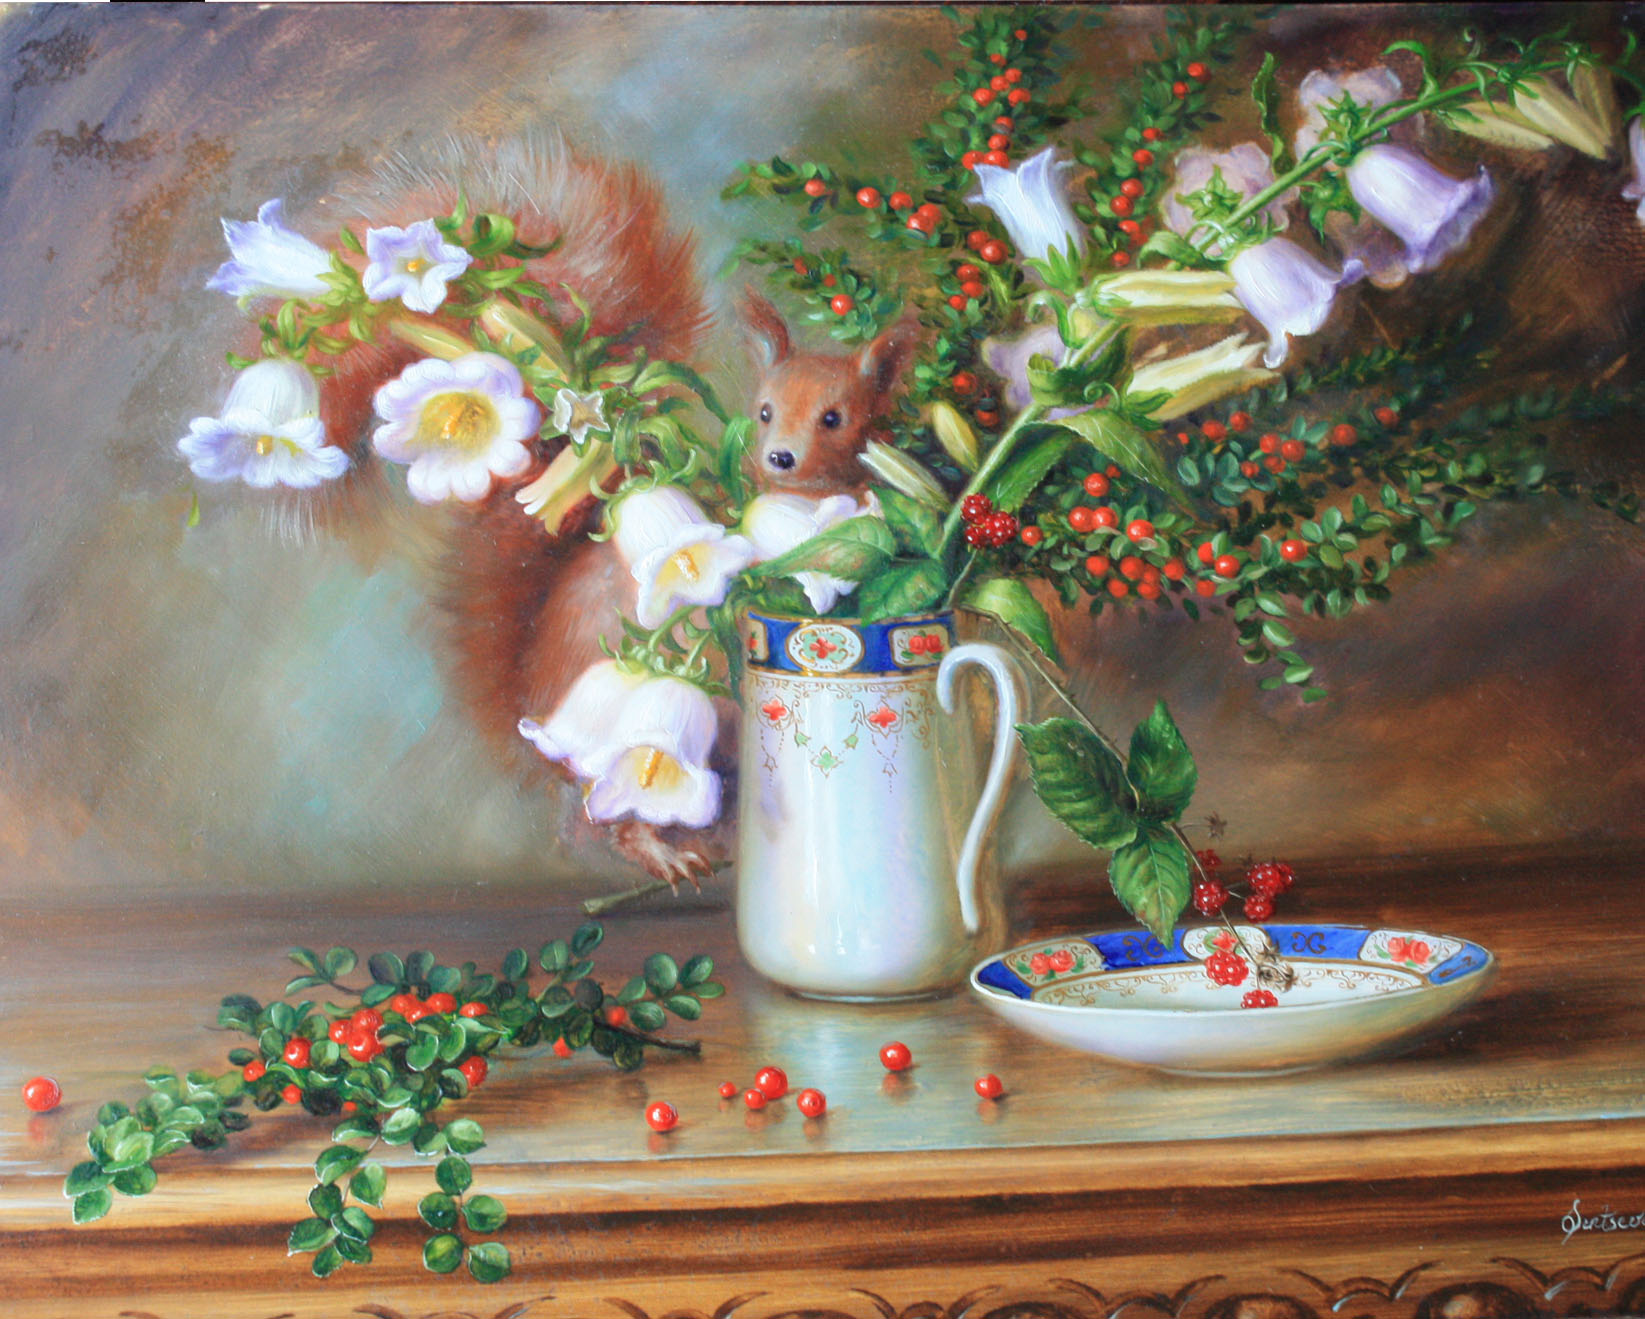 Squirell with white flowers